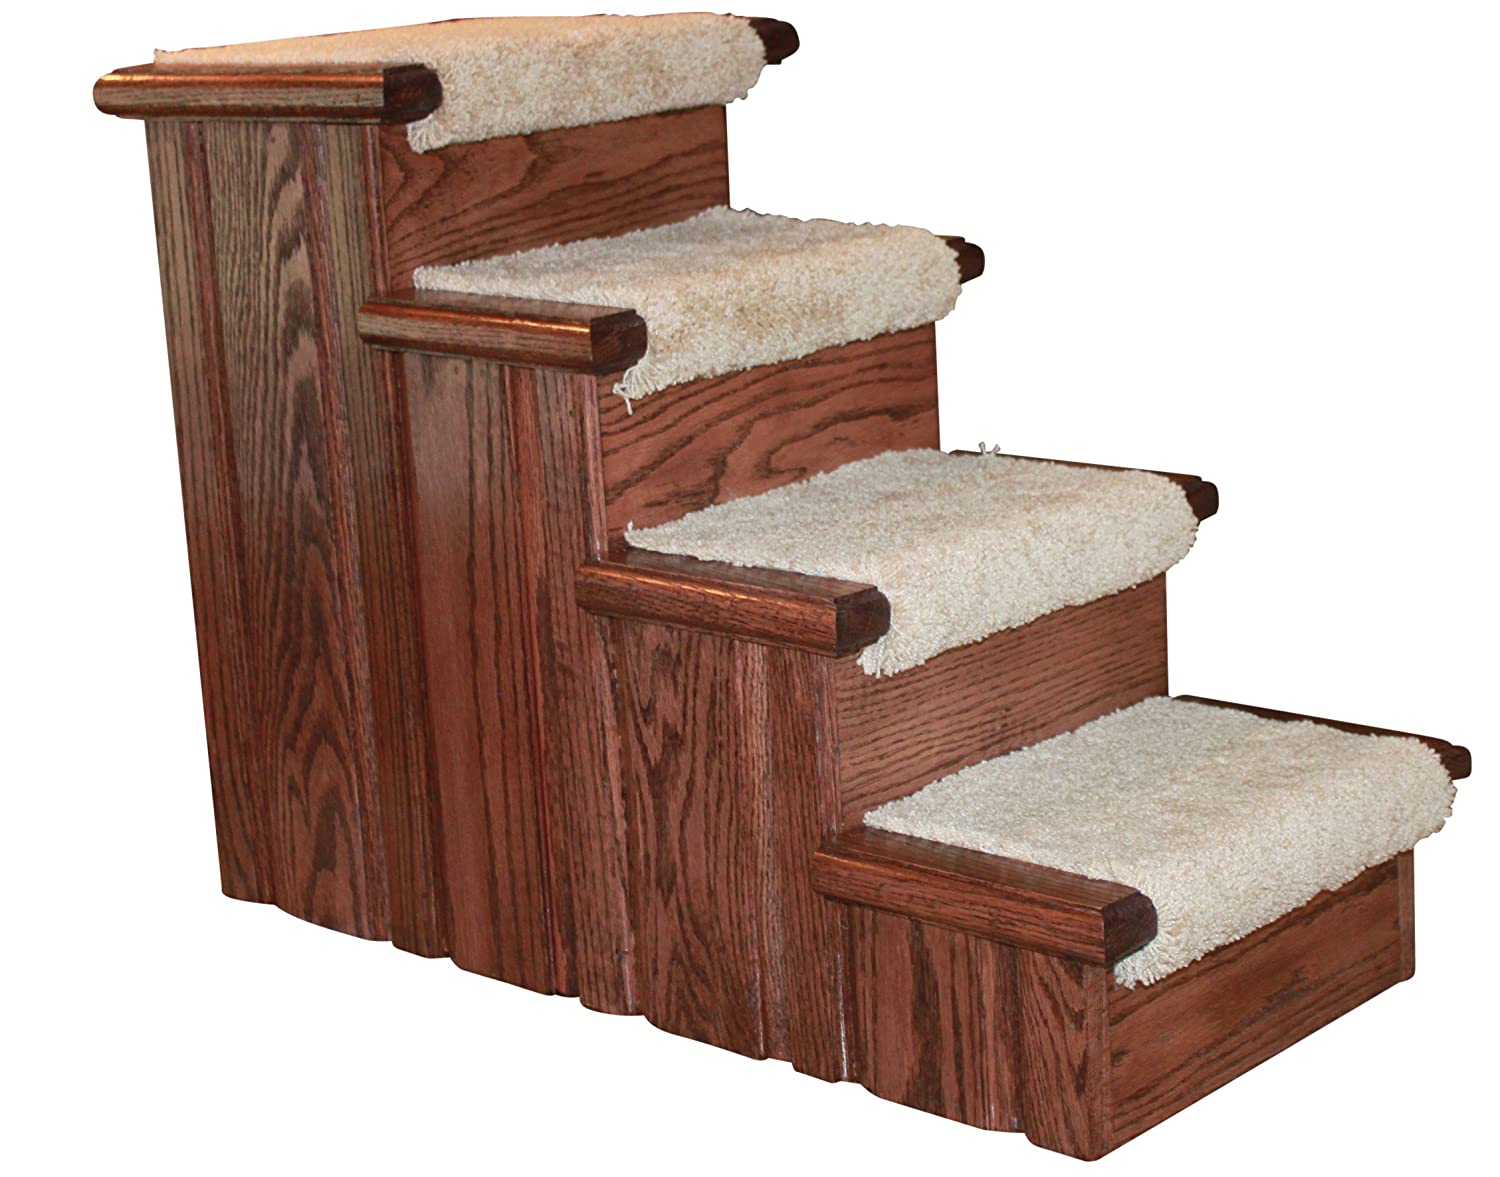 Lovely Amazon.com : Premier Pet Steps Tall Raised Panel Dog Steps, Carpeted Tread  With A Rich Cherry Stain, 23 Inch : Dog Stairs For High Beds : Pet Supplies